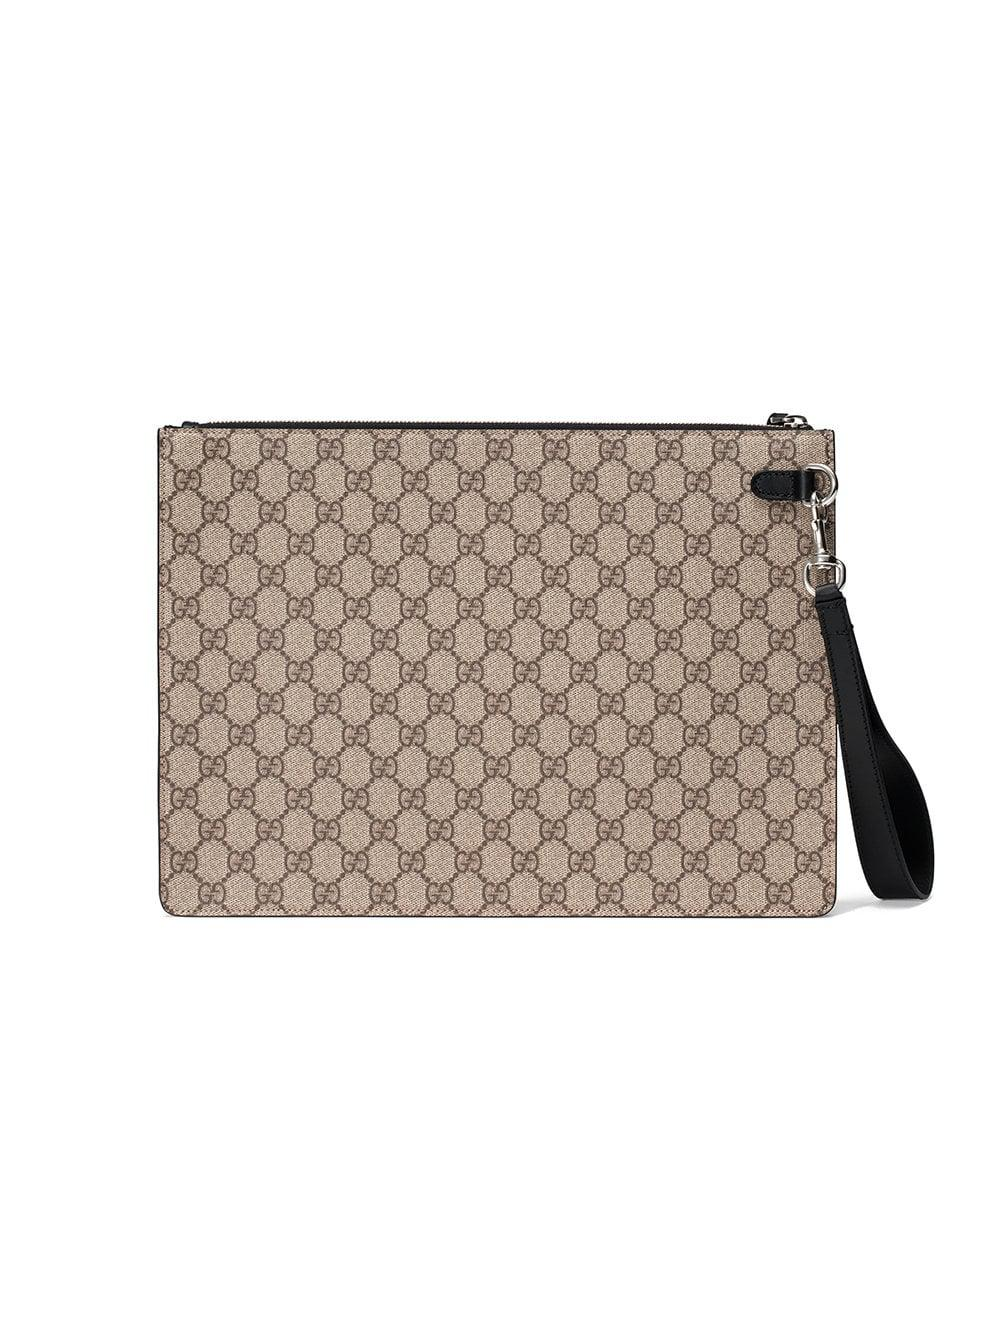 Gucci - Multicolor GG Supreme Men s Bag for Men - Lyst. View fullscreen eaa2eb20ce